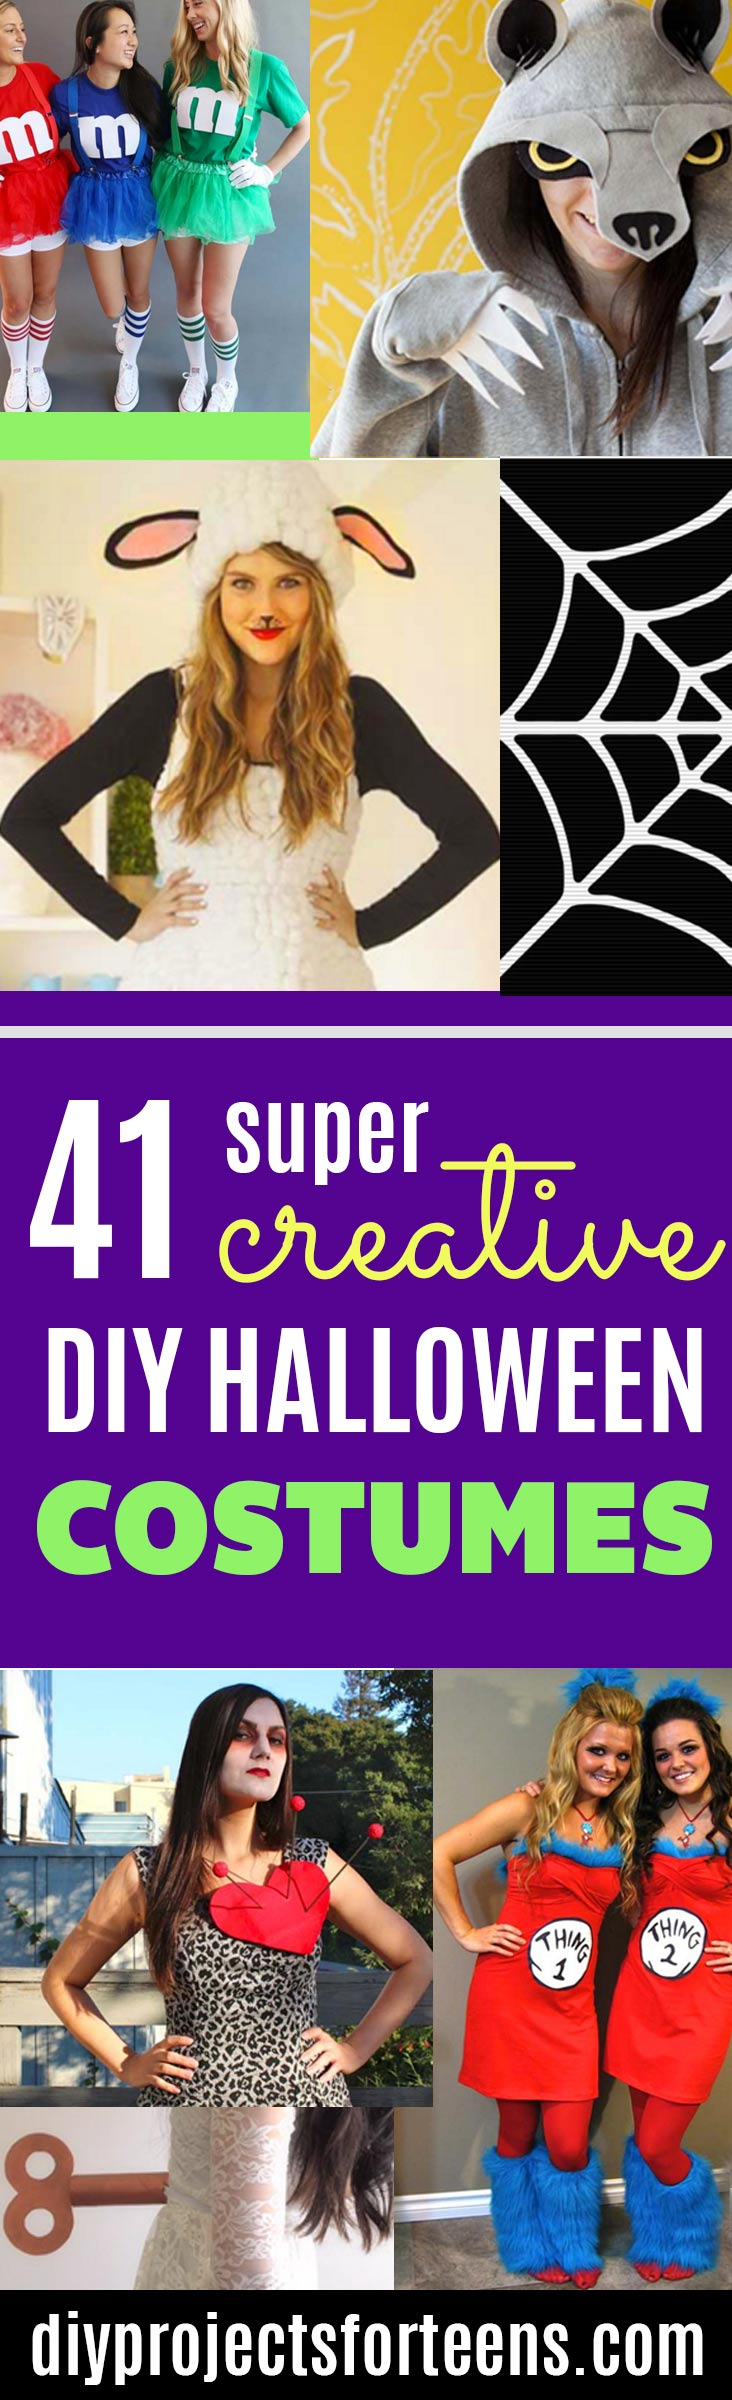 41 super creative diy halloween costumes for teens best last minute diy halloween costume ideas do it yourself costumes for teens teenagers solutioingenieria Image collections